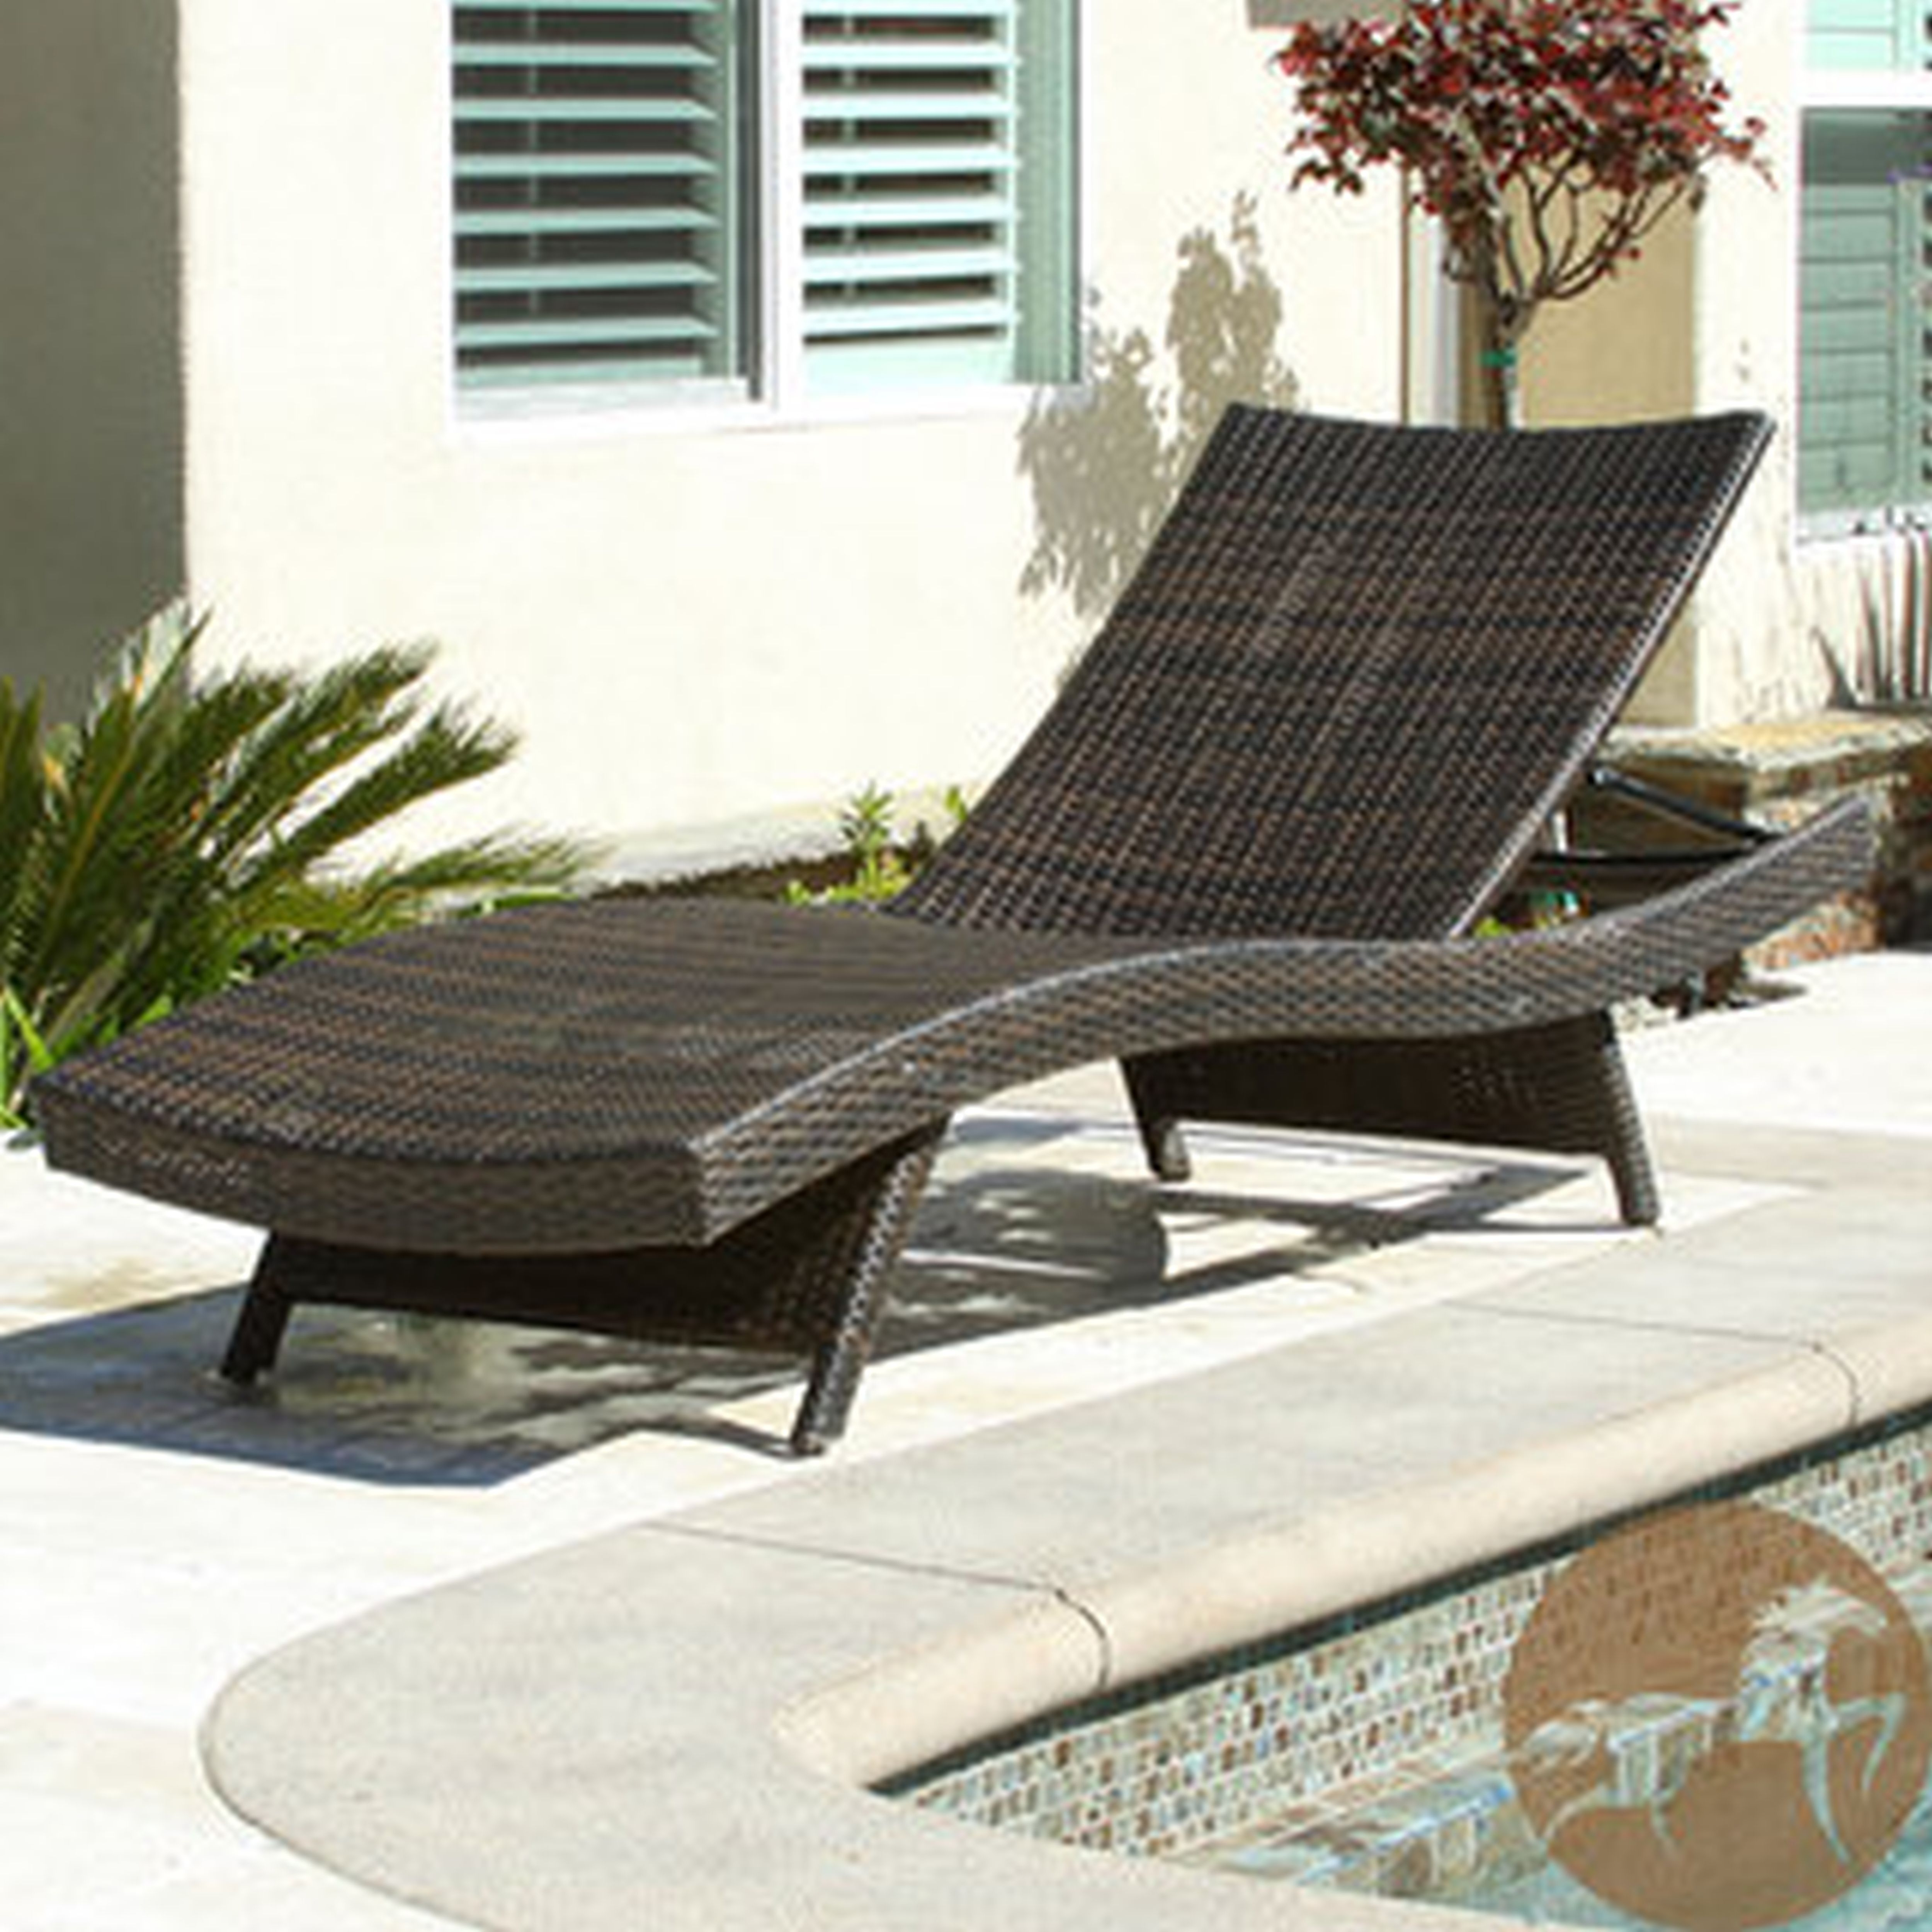 Lowes Chaise Lounges Intended For Well Liked Furniture: All Weather Wicker Patio Furniture Design With Lowes (View 9 of 15)